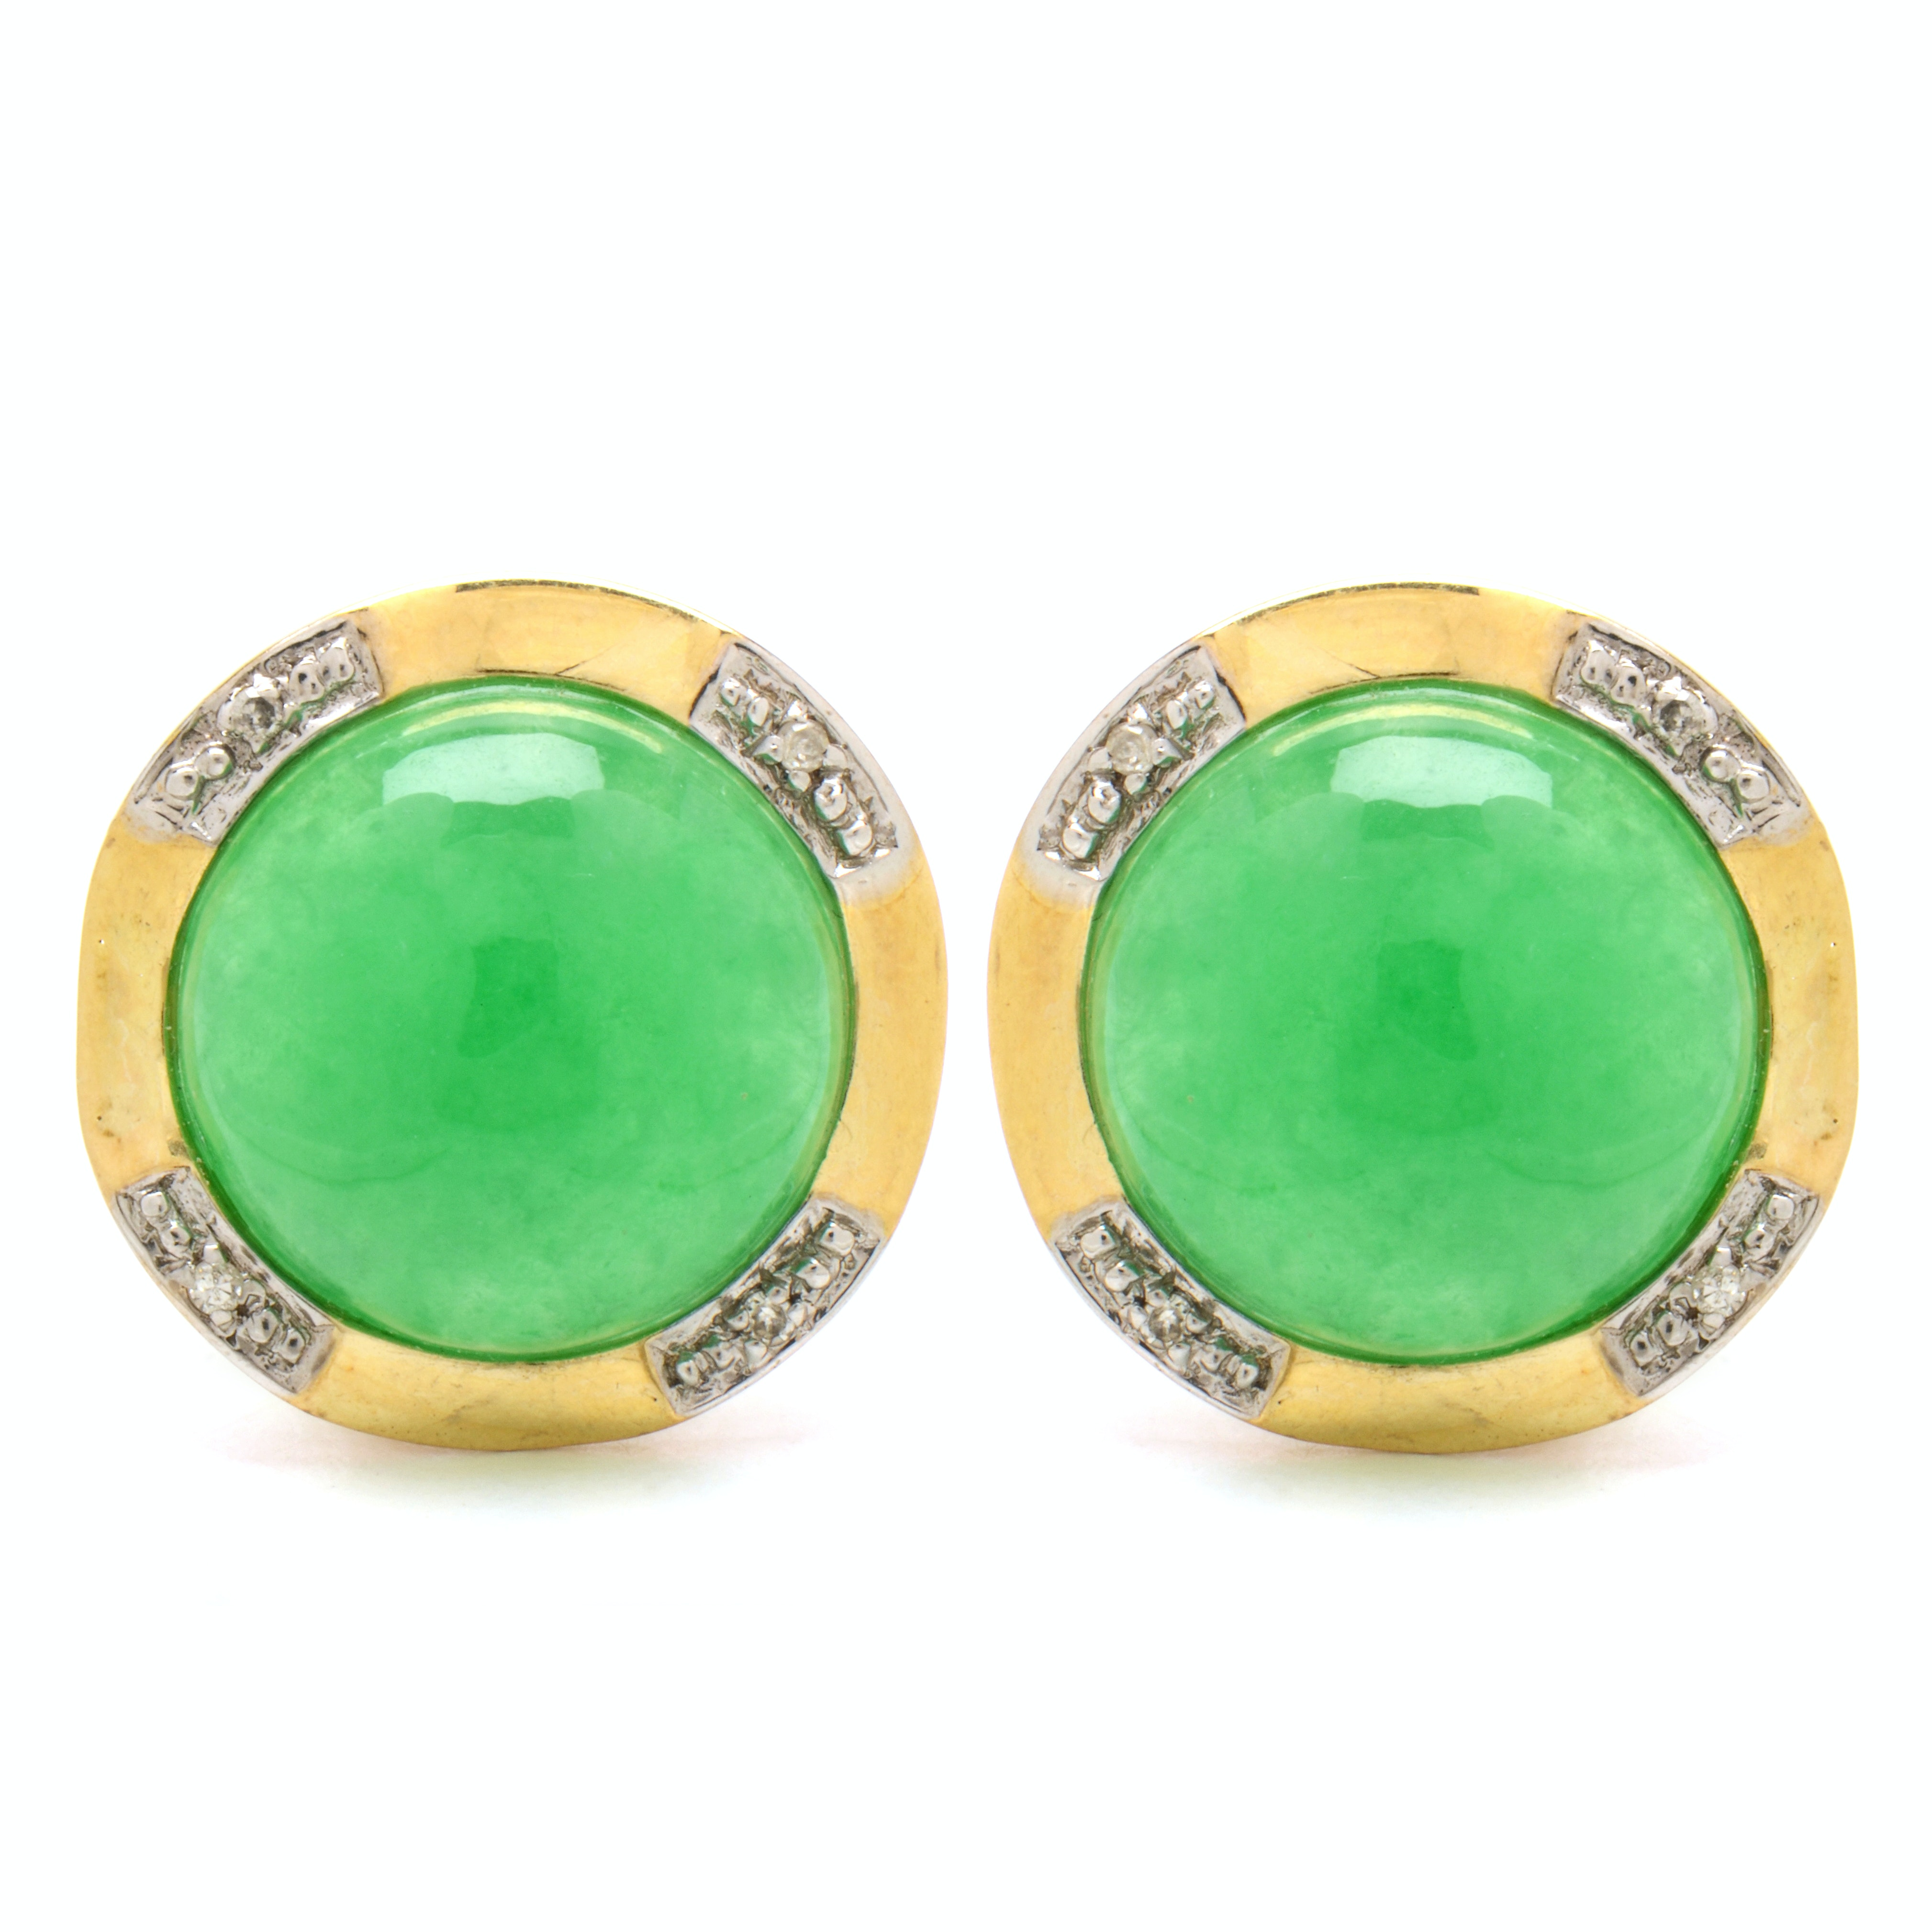 14K Yellow Gold Dyed Jadeite and Diamond Pierced Earrings